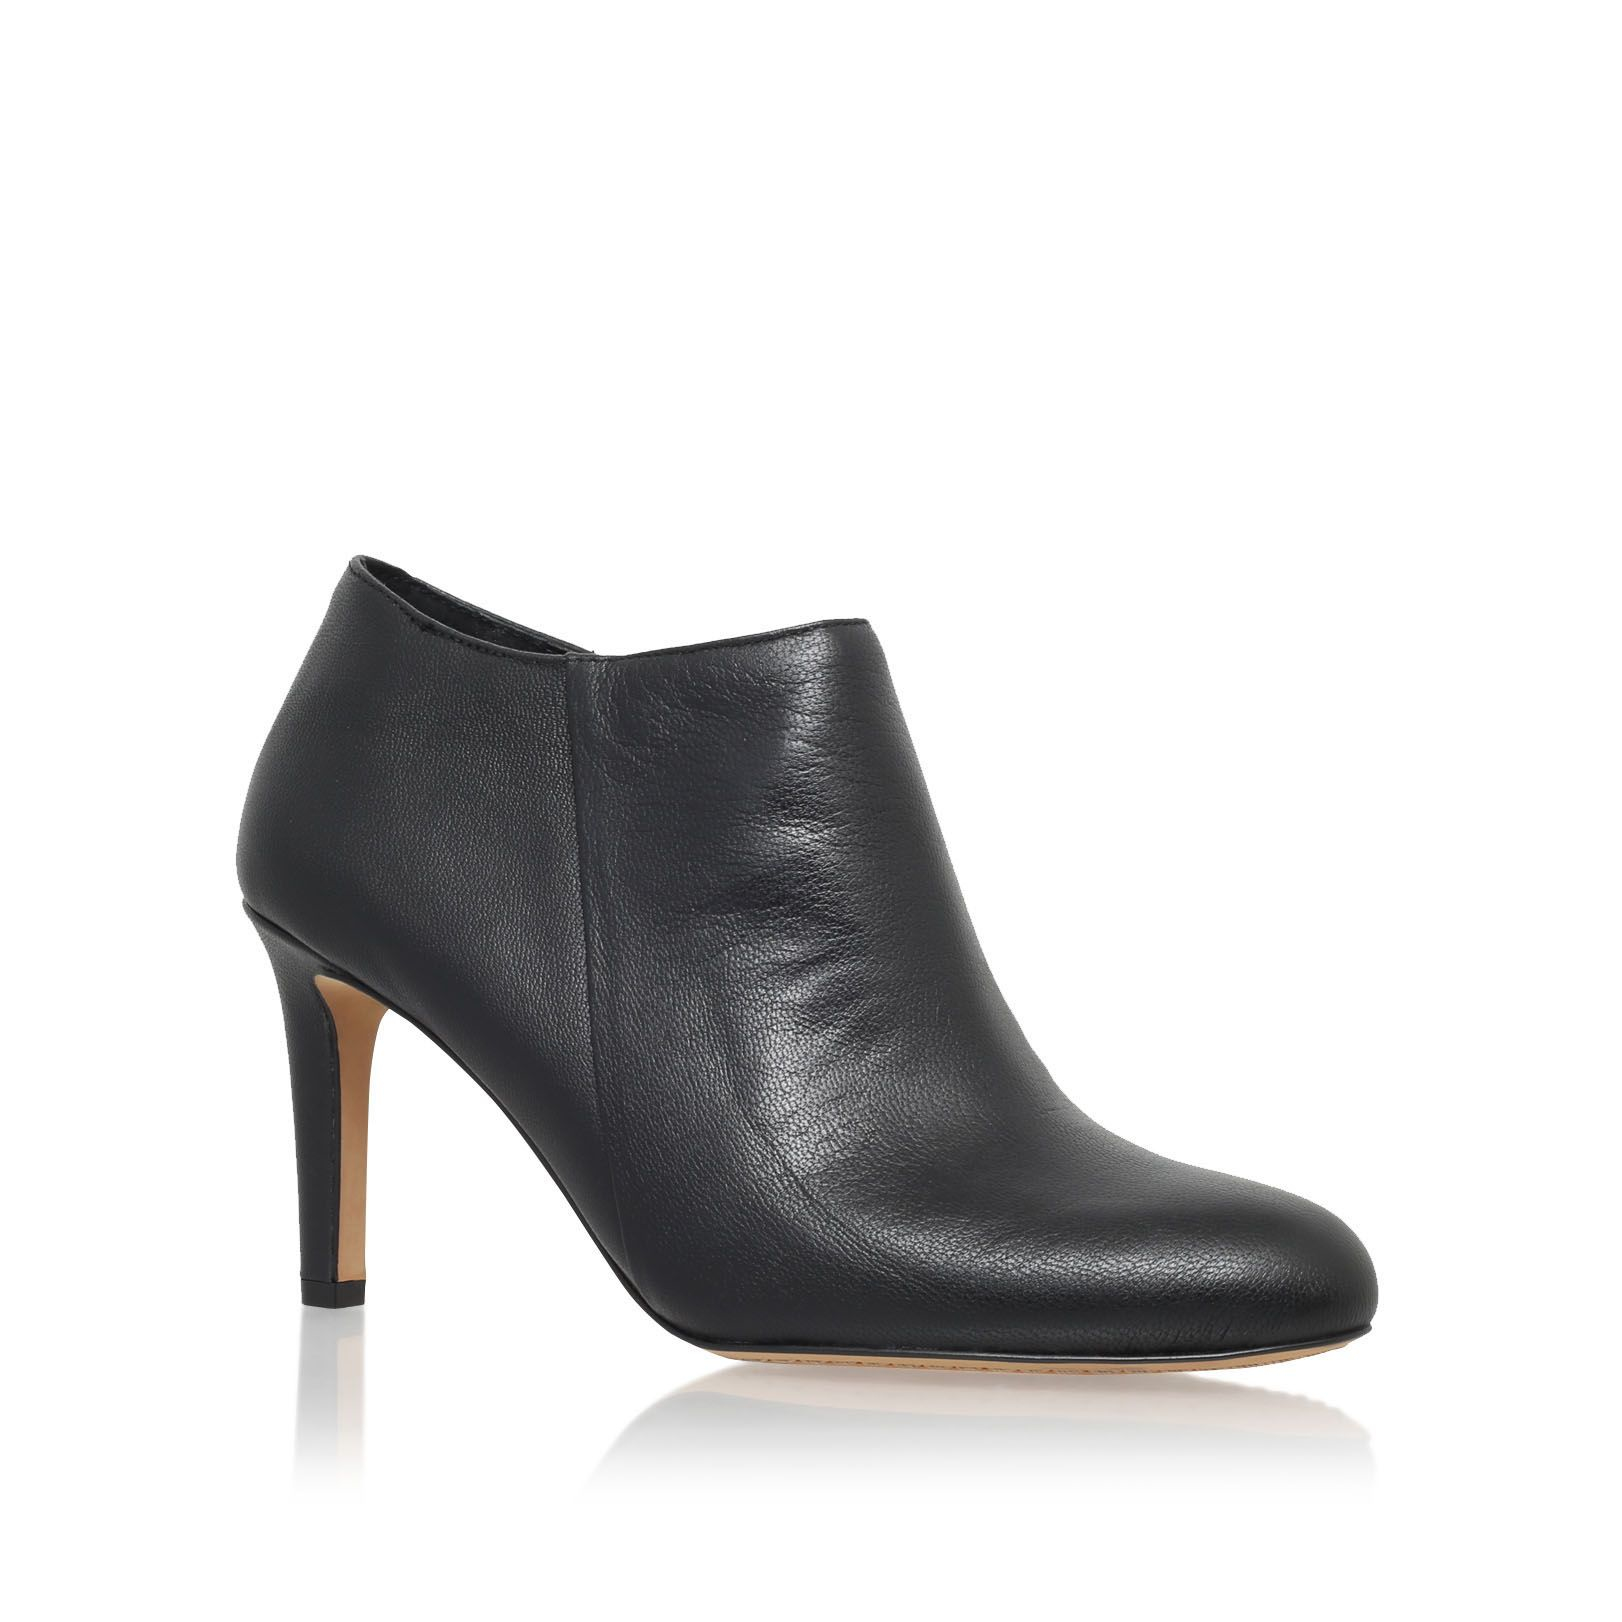 Vince Camuto Corra High Heel Shoe Boots In Black Lyst